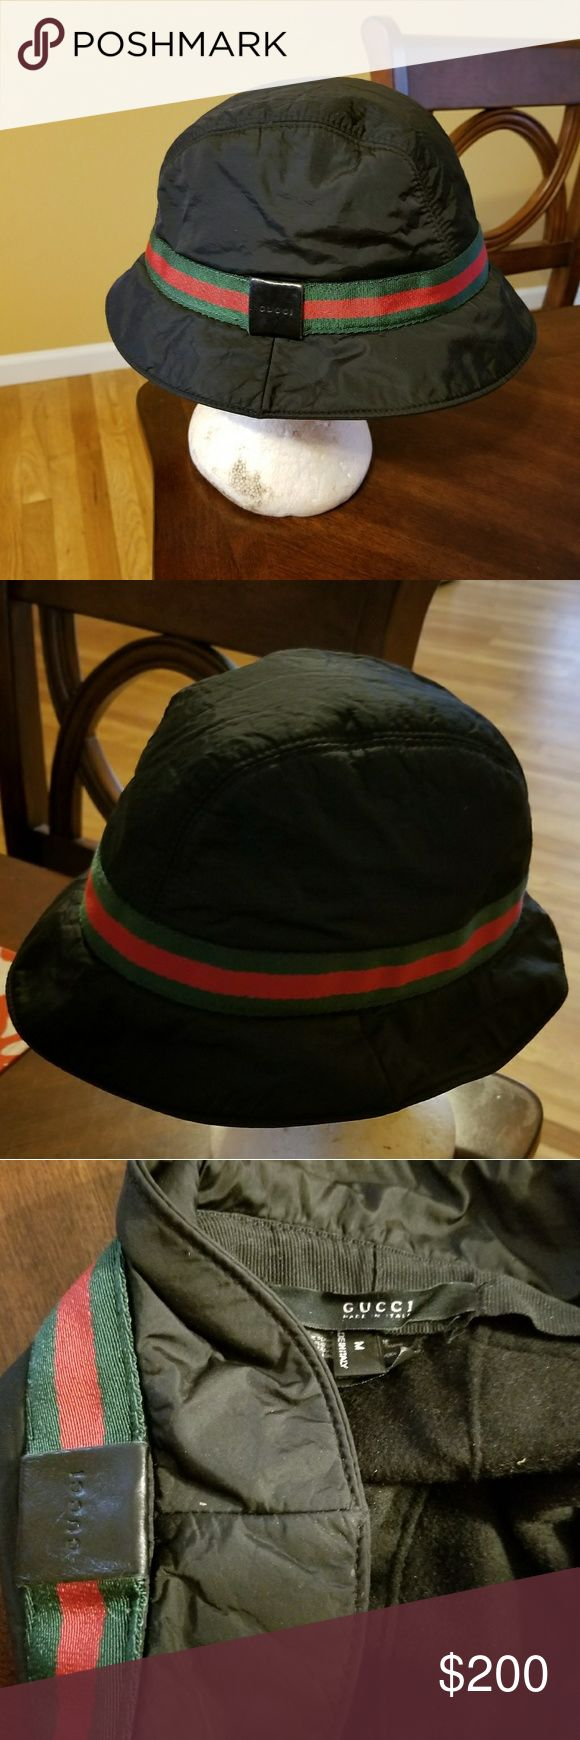 Gucci Black with the Gucci green and Red Signature Black Gucci Bucket Hat with green and Red woven web trim featuring leather embossed logo accent at the brim. Designer size Medium. Good condition moderately worn. 99%poliammide 1% Polyurethane Lining: 50% cashmere 50% Lana/wool Made Italy Pre-worn Gucci Accessories Hats